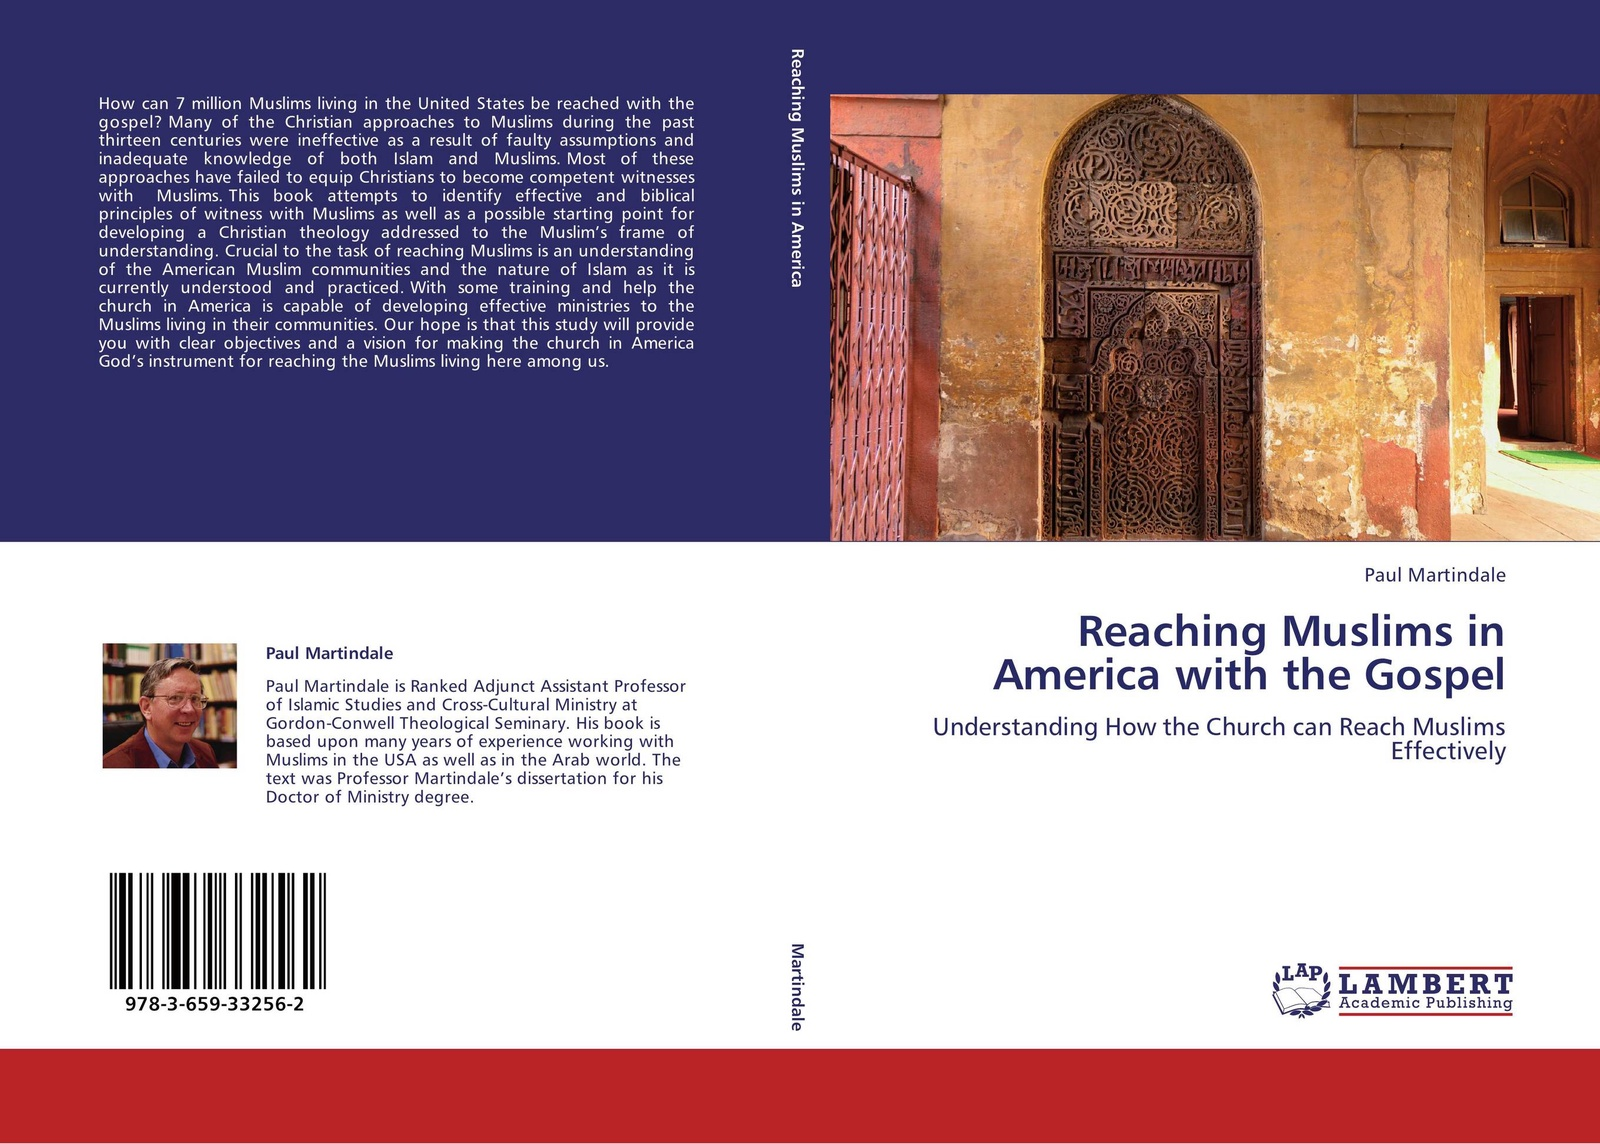 Paul Martindale Reaching Muslims in America with the Gospel